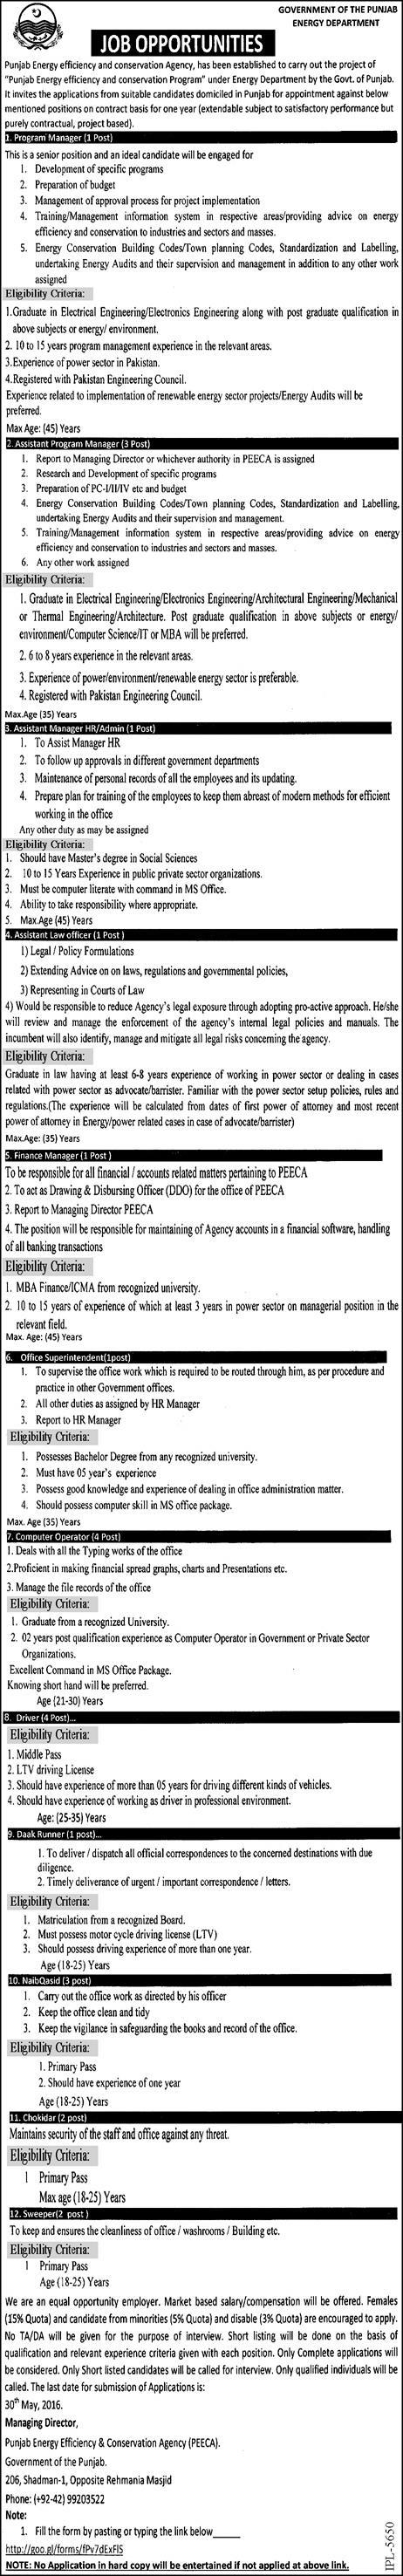 Government of Punjab Energy Department Jobs